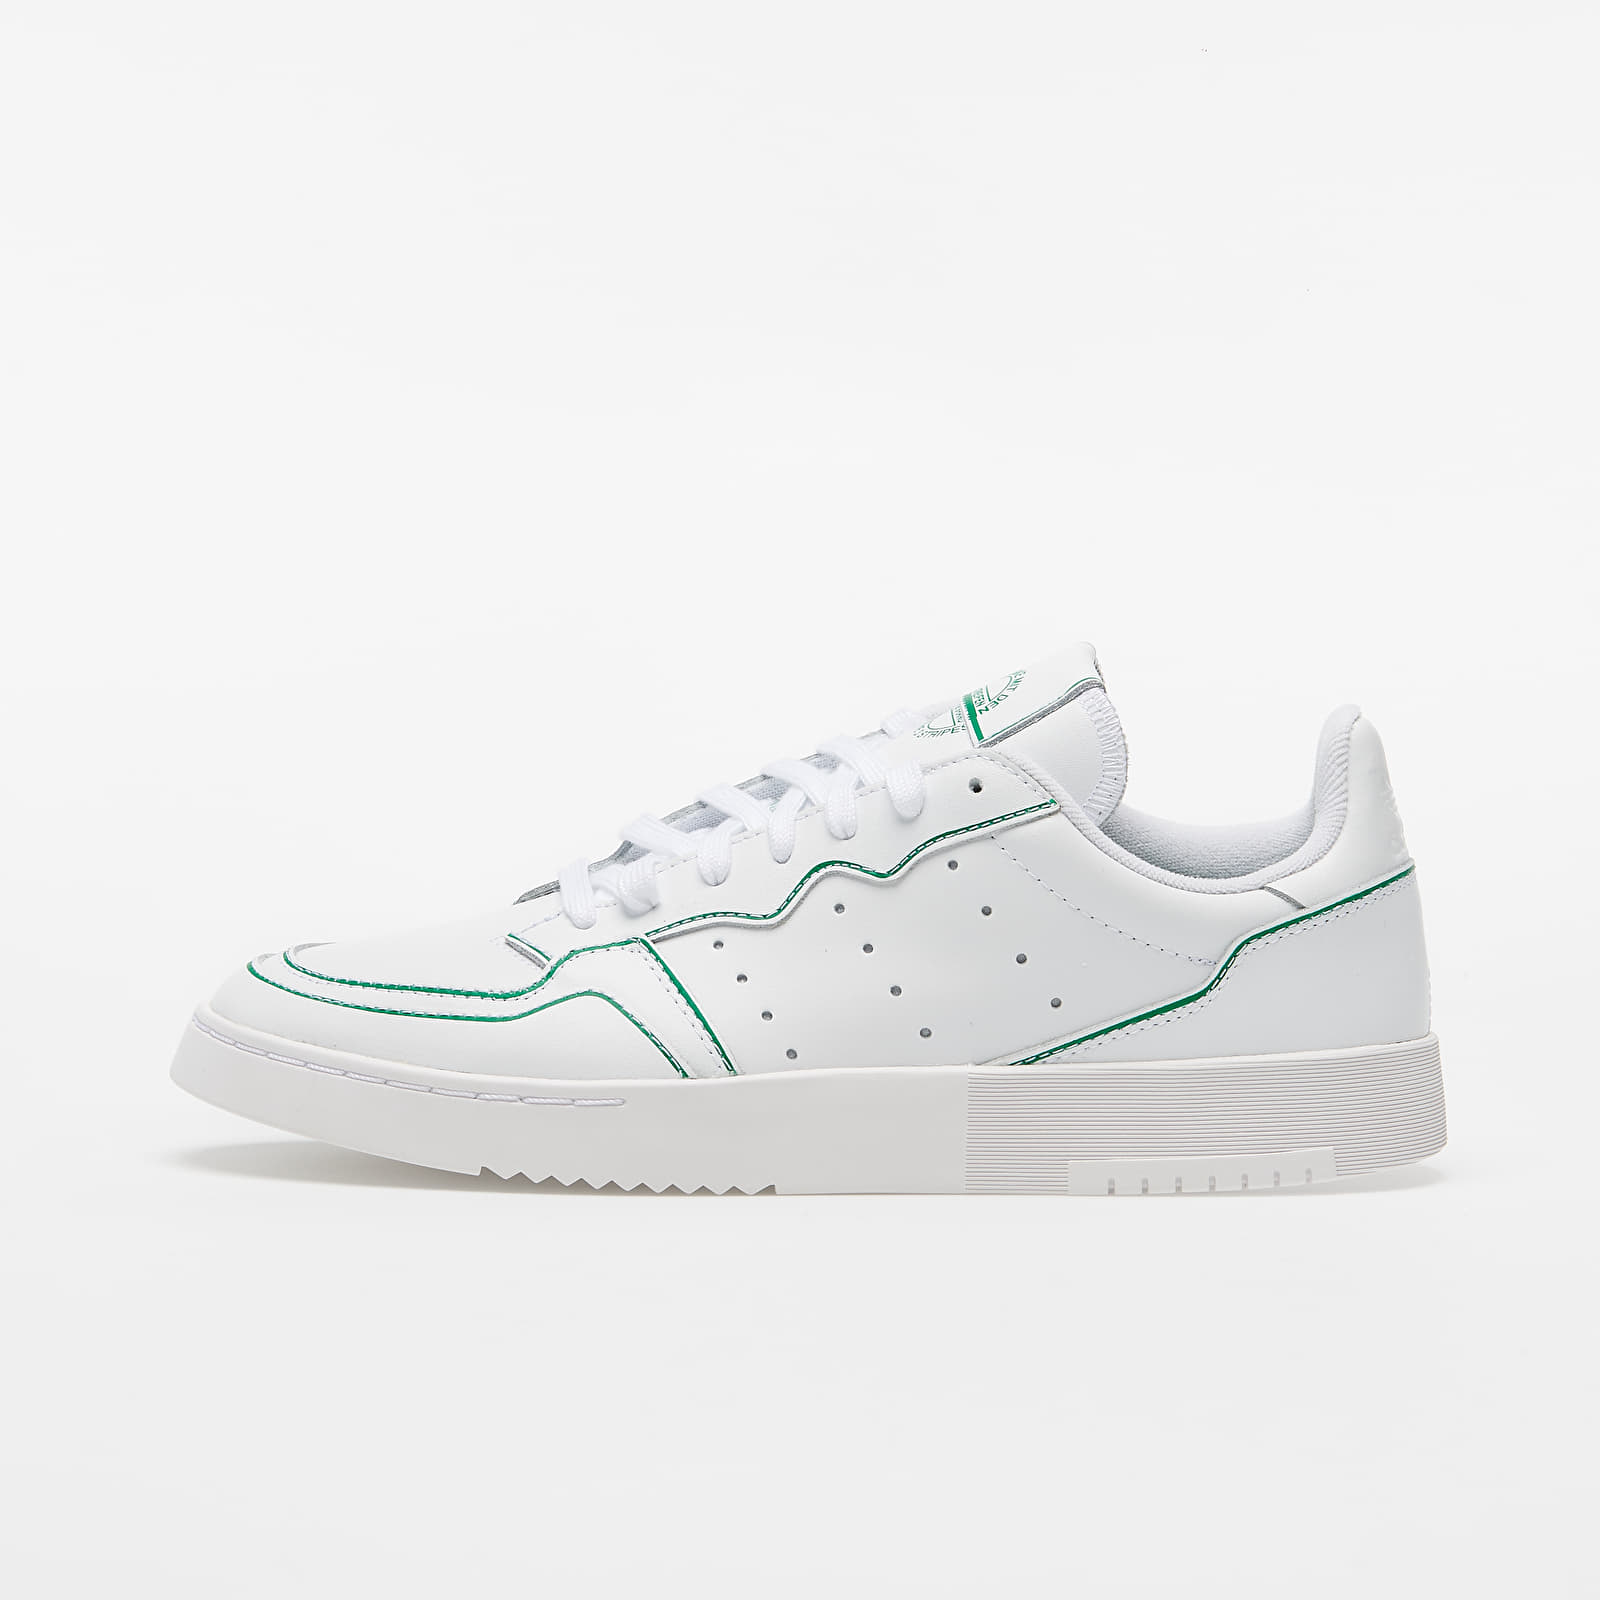 Men's shoes adidas Supercourt Ftw White/ Ftw White/ Green